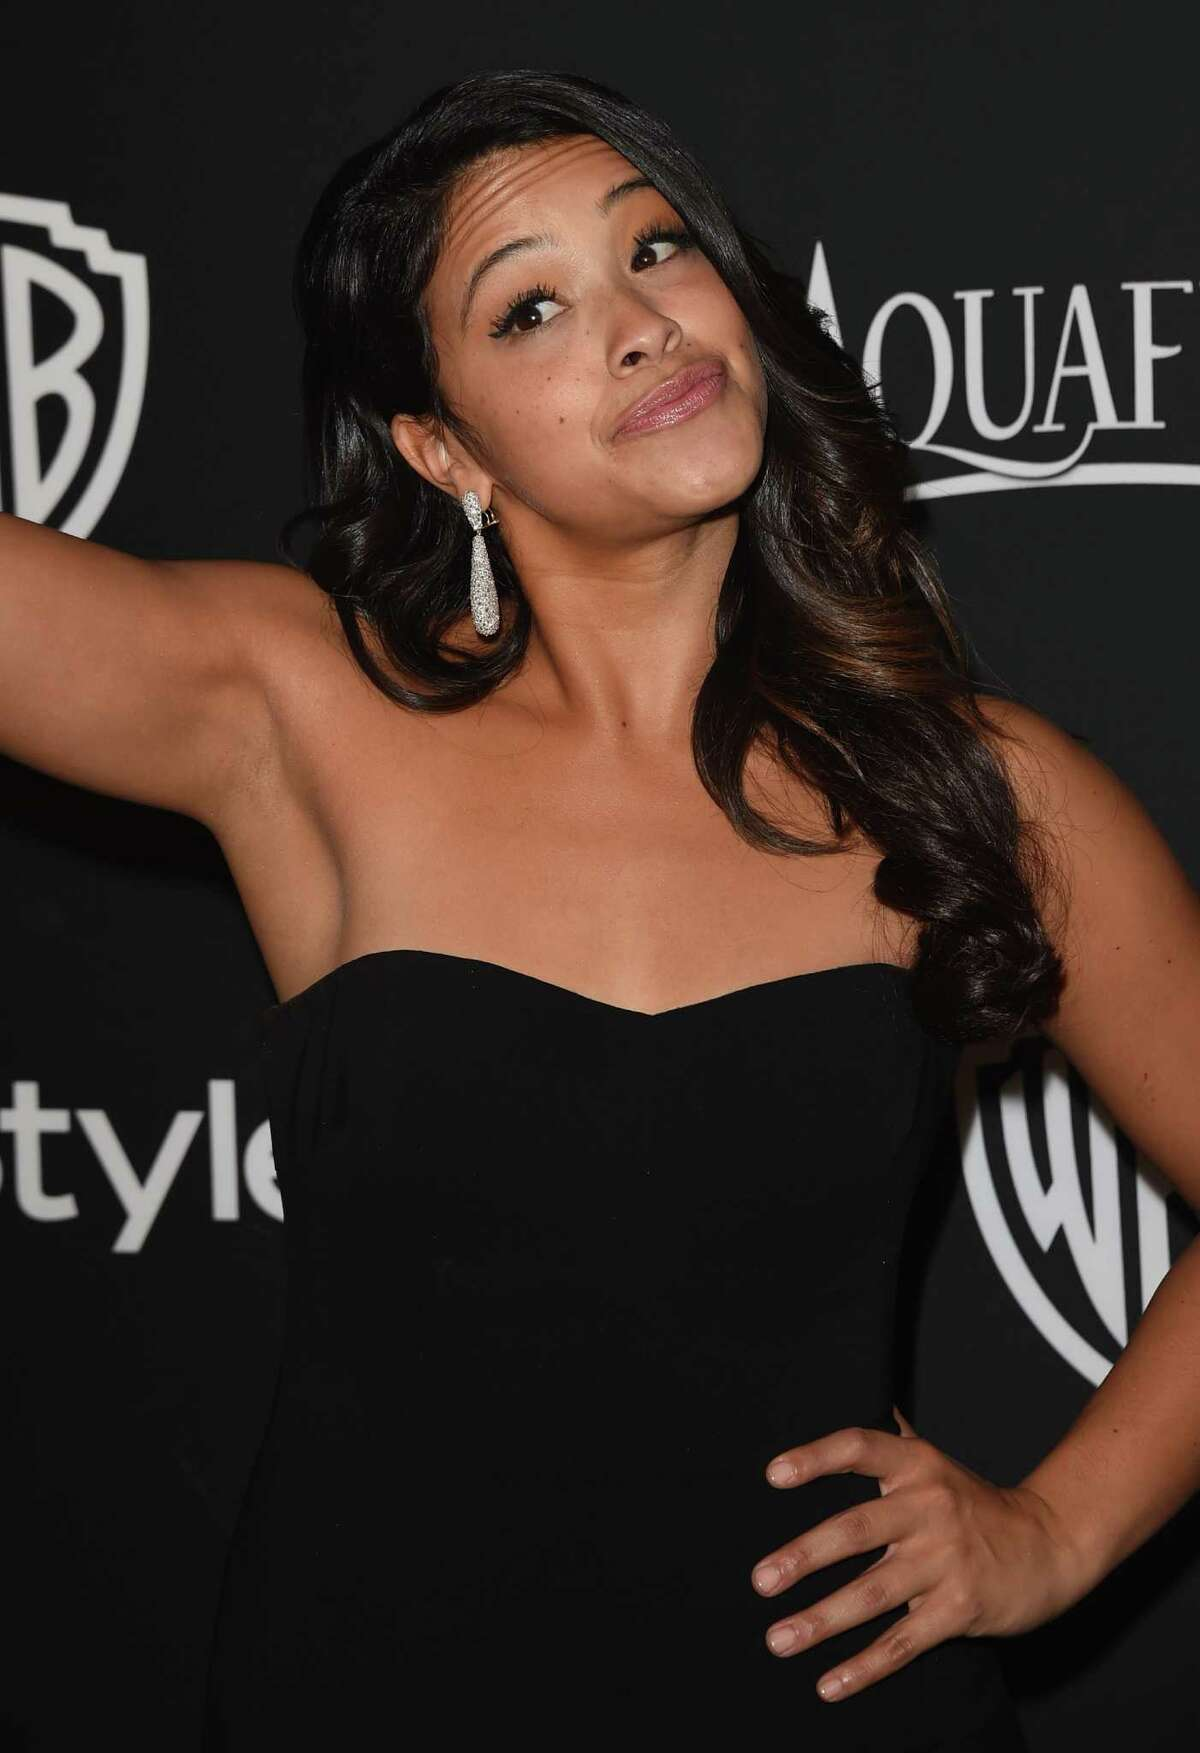 Actress Gina Rodriguez won a Golden Globe award - breaking new ground for Latinos in Hollywood.